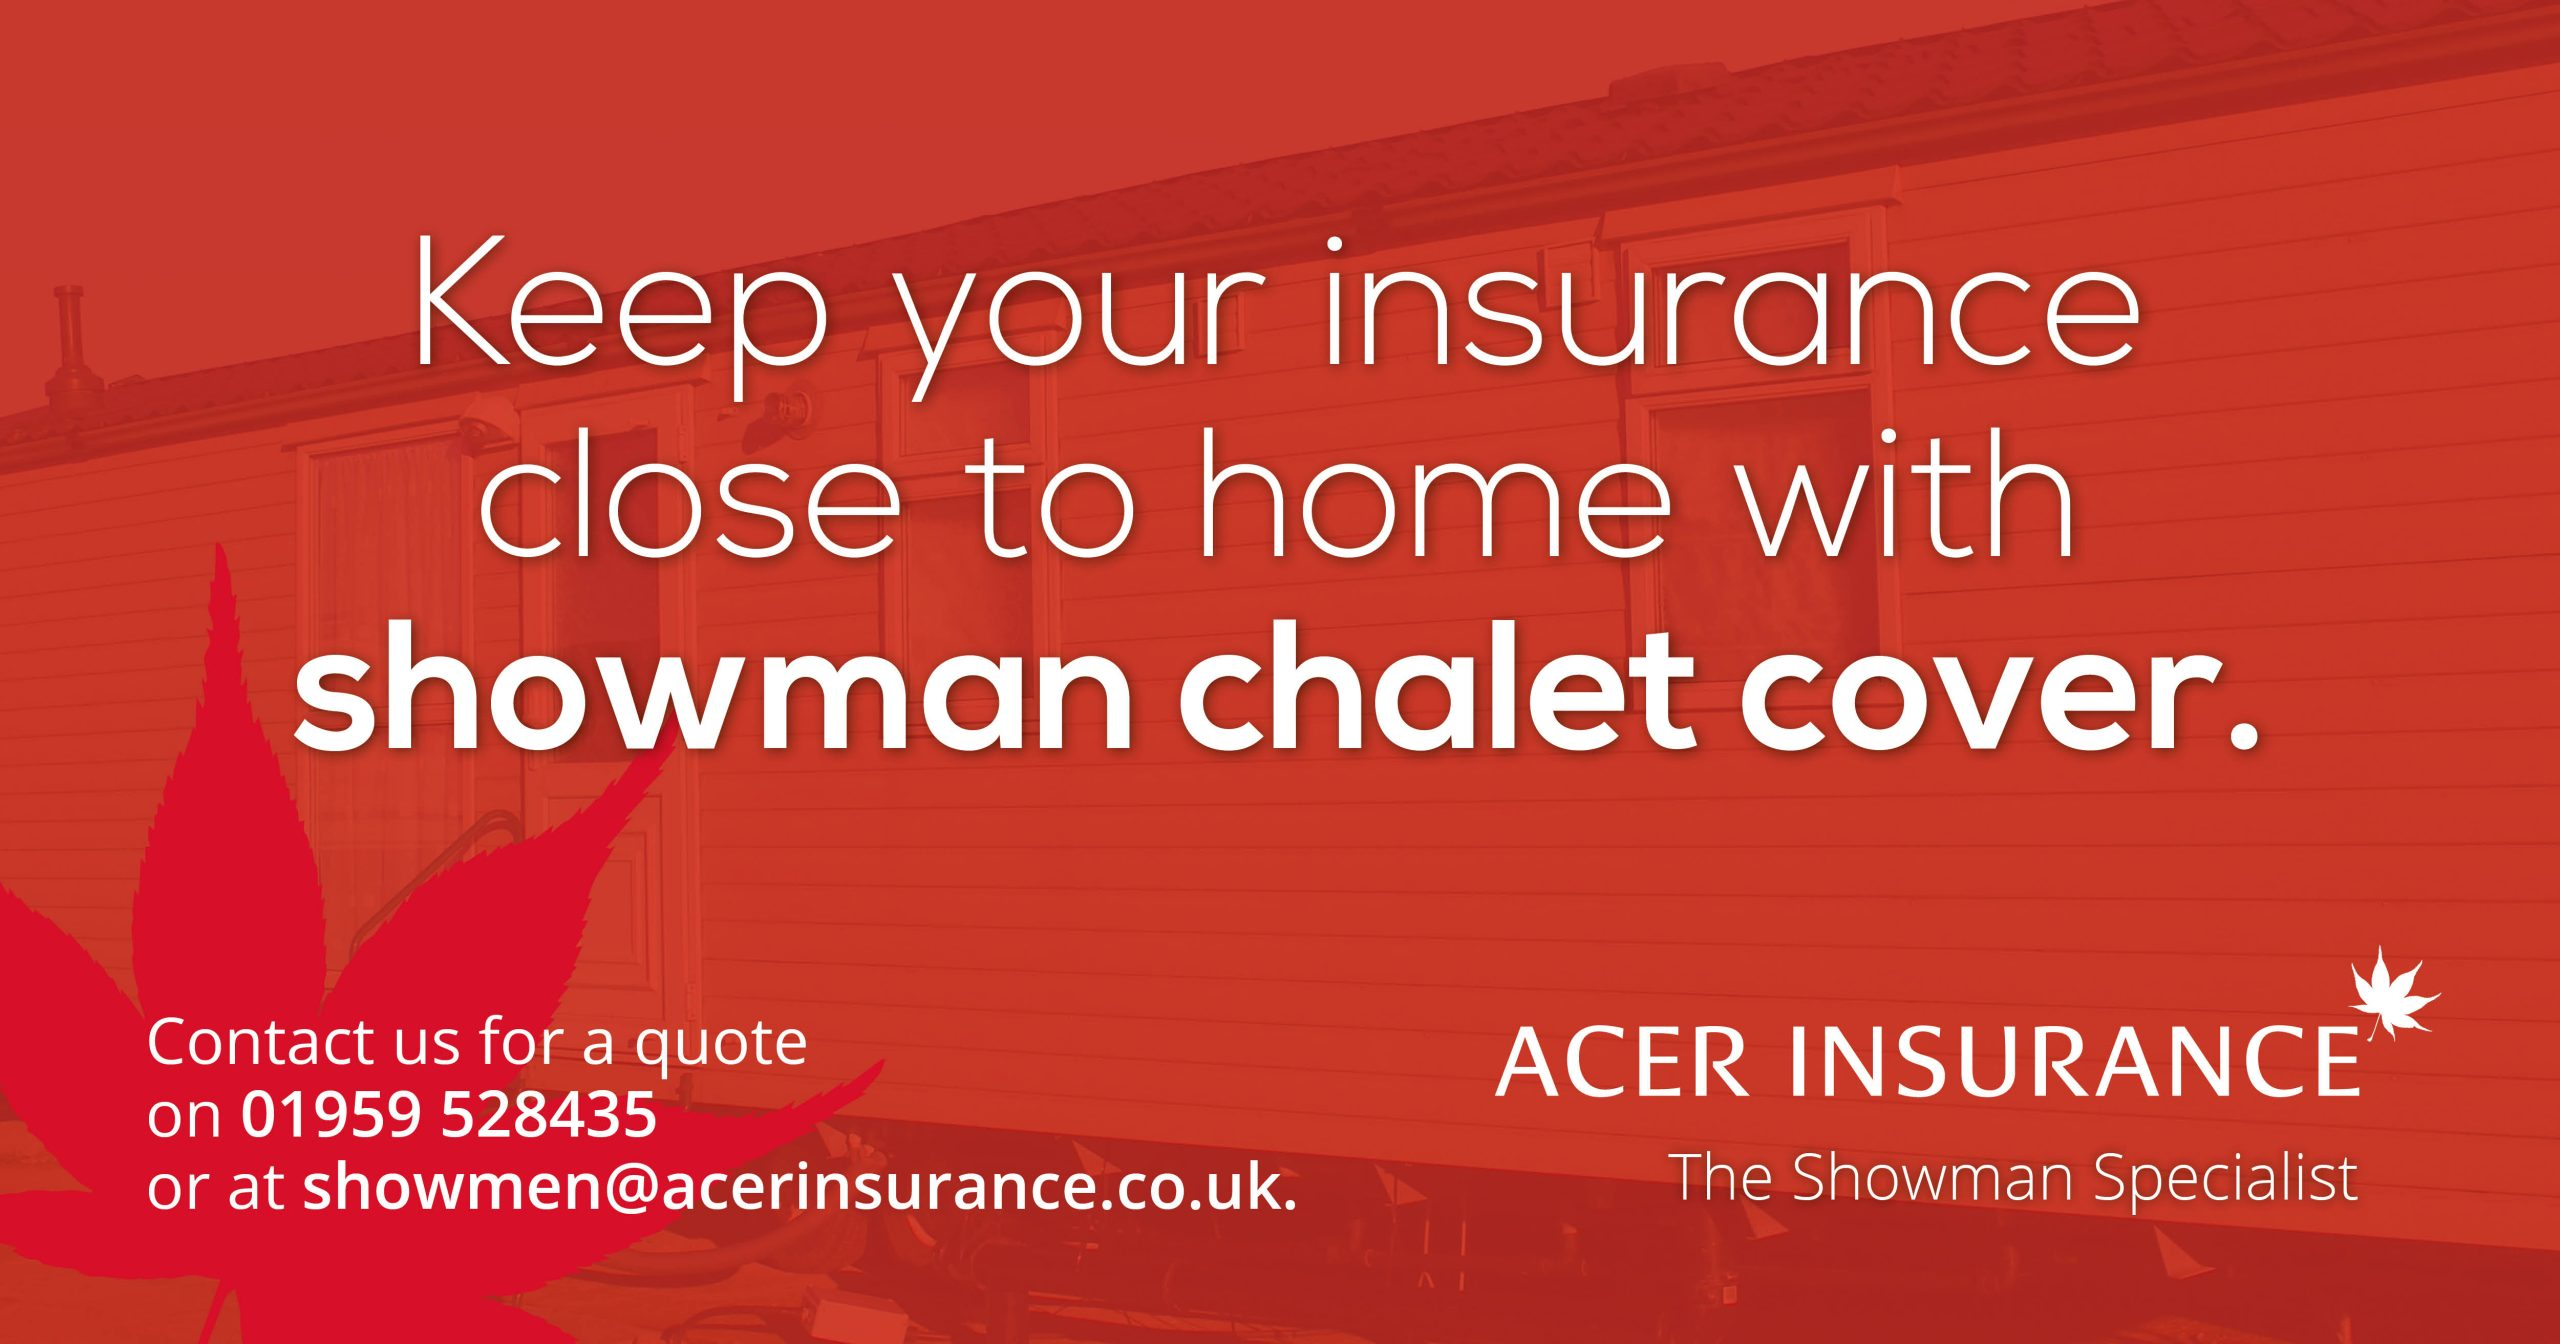 Keep your insurance close to home